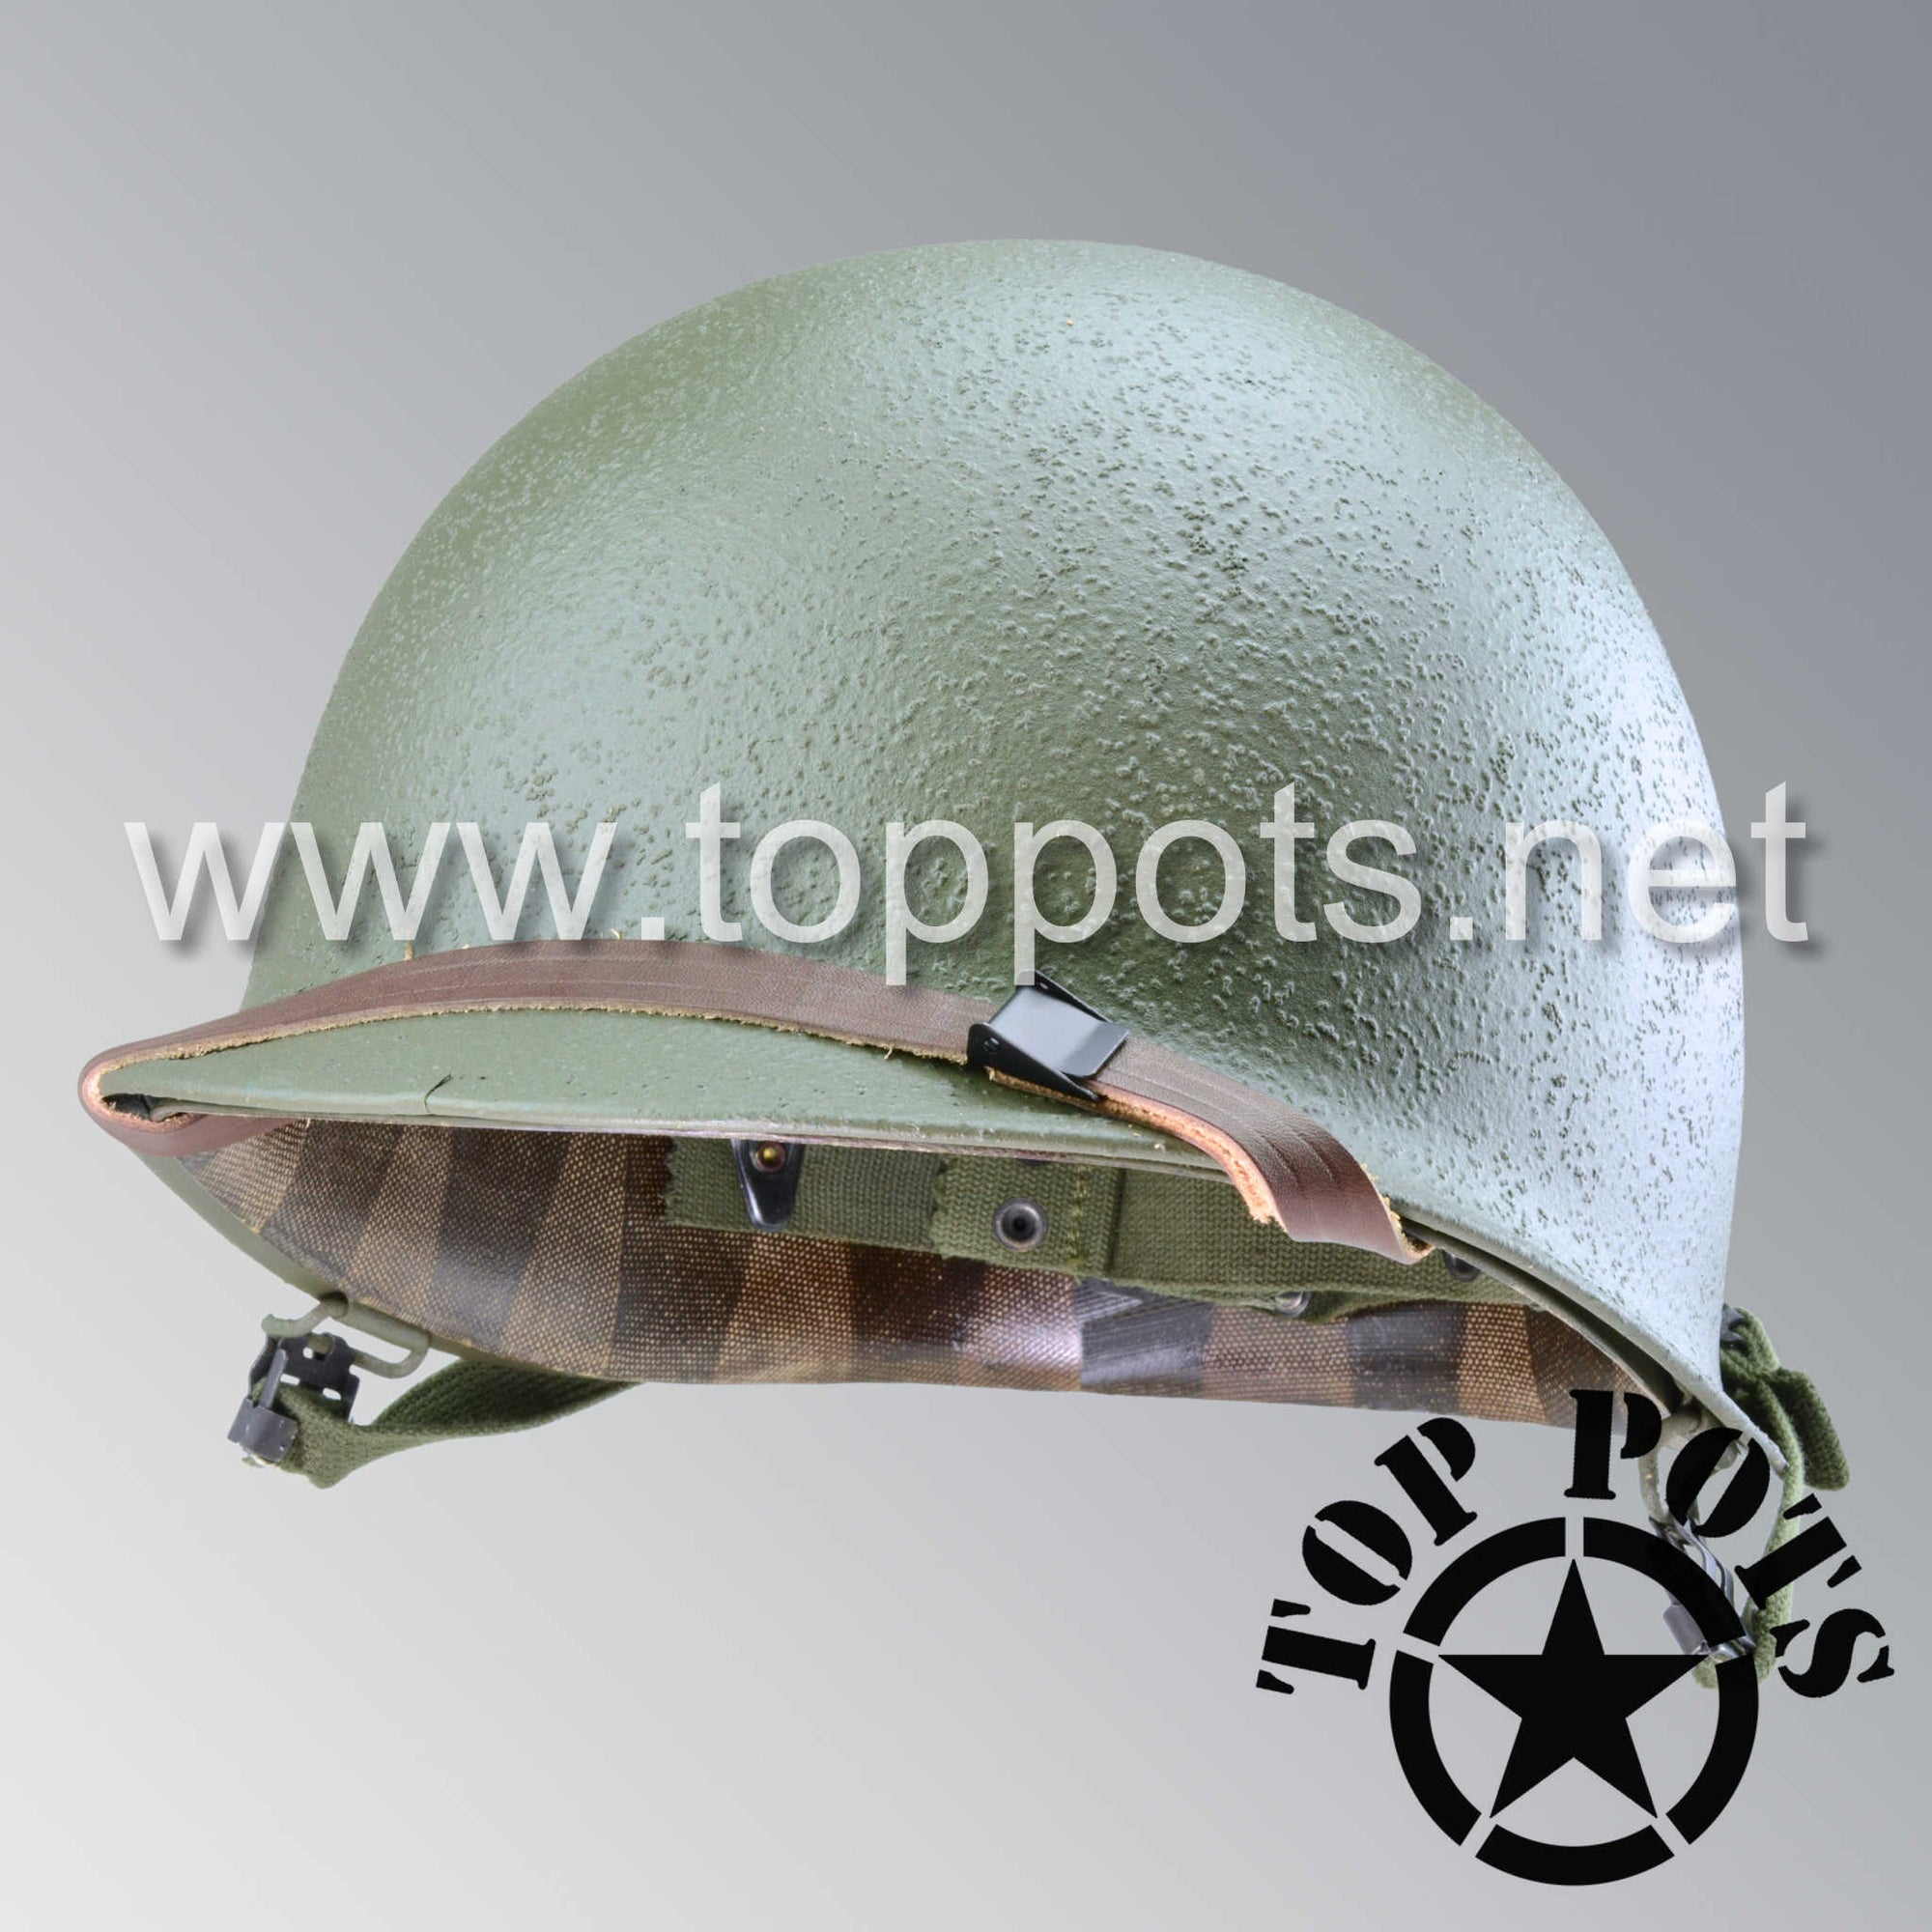 Image 1 of Korean War US Army Restored Original M1 Infantry Helmet Swivel Bale Shell and Liner with T1 Chinstraps